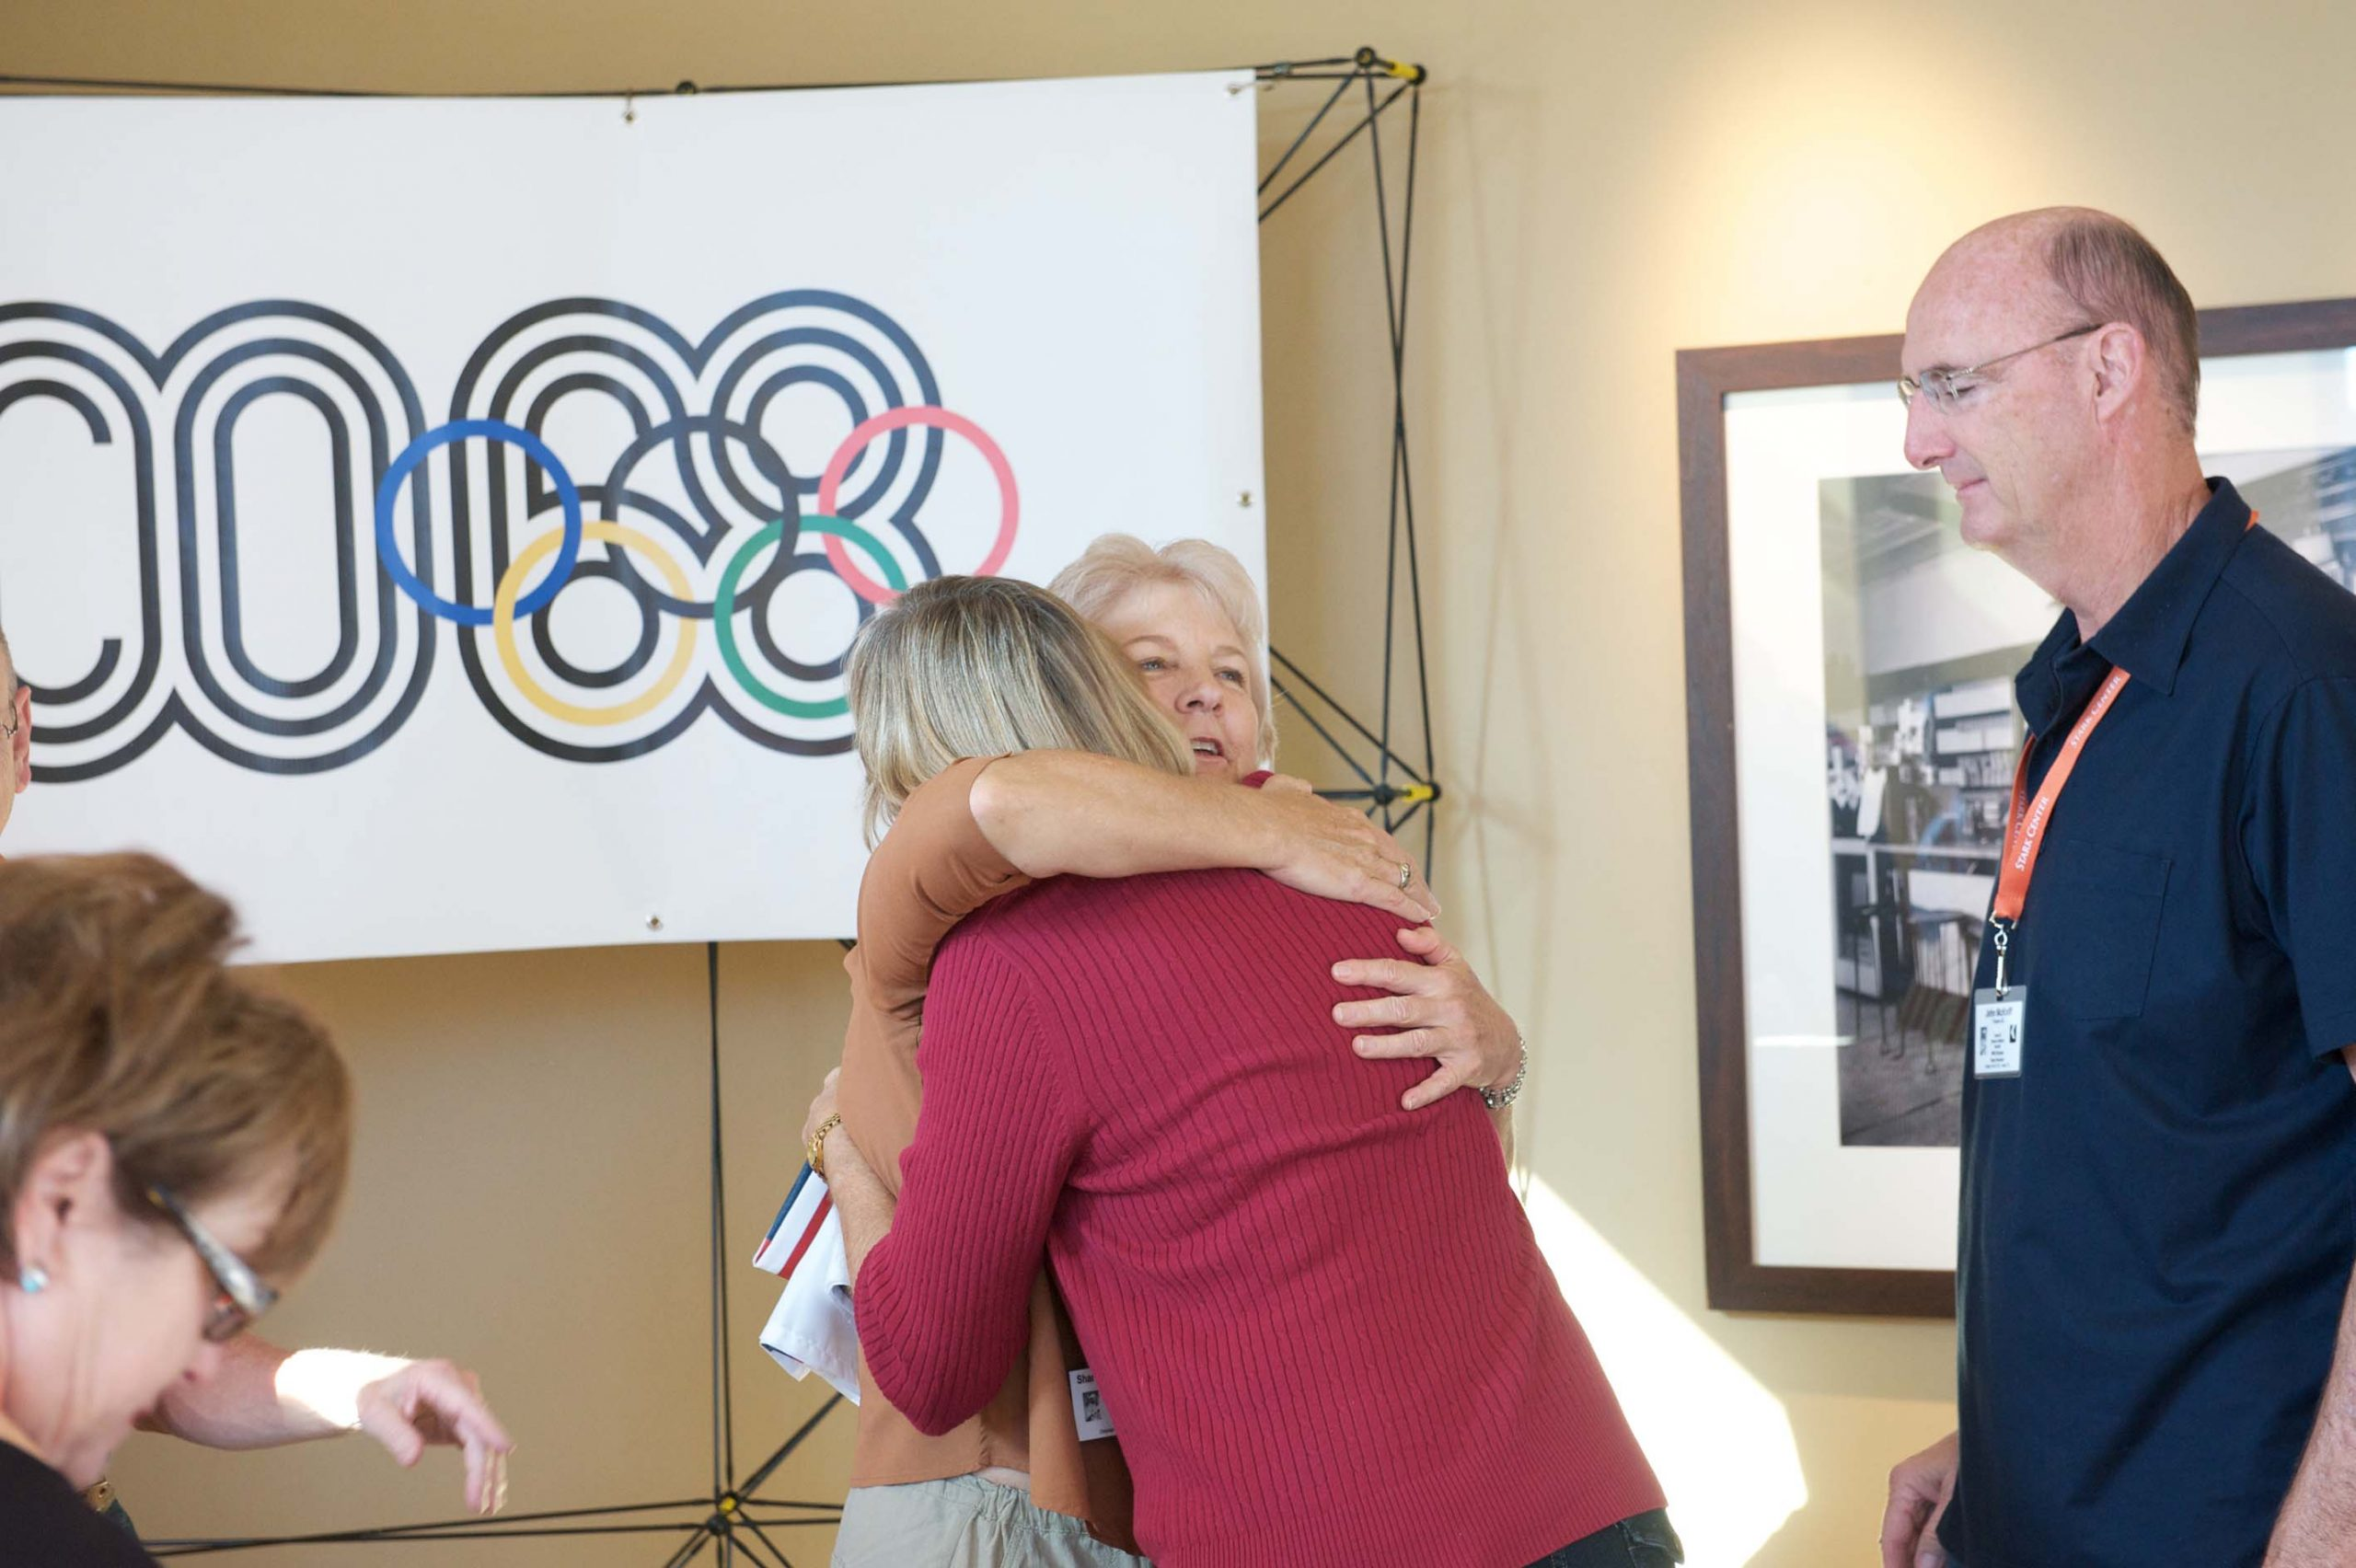 Five people, including two hugging, at the 1968 U.S. Olympic Team 2012 Reunion.